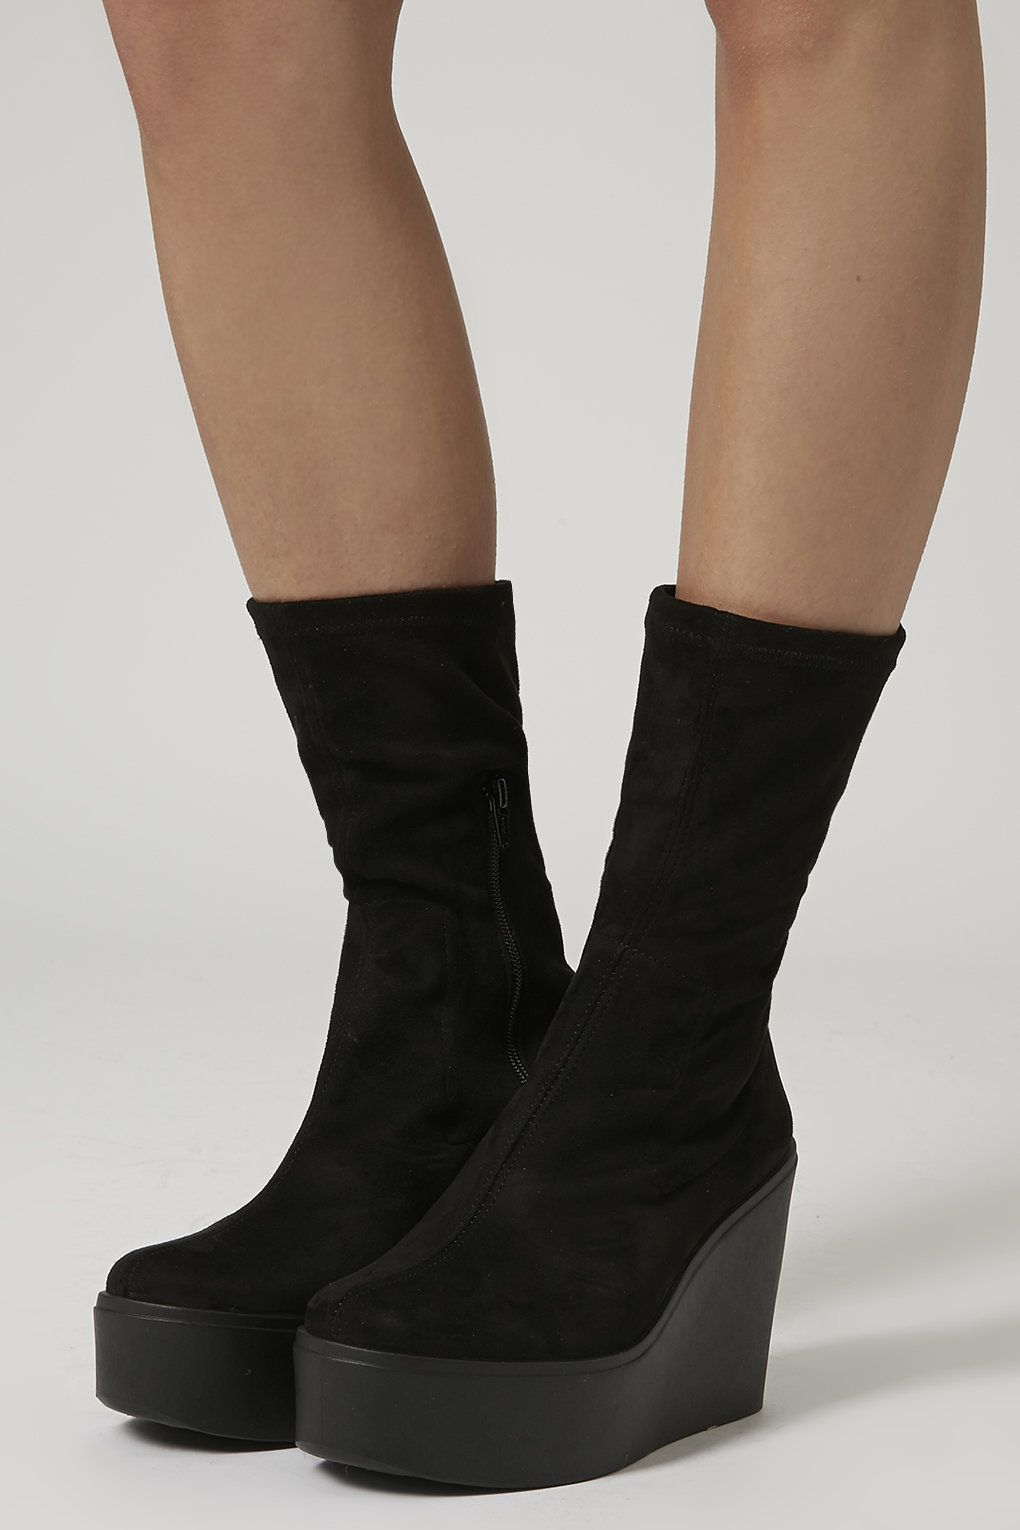 32099006d4e HERO Stretch Wedge Boots